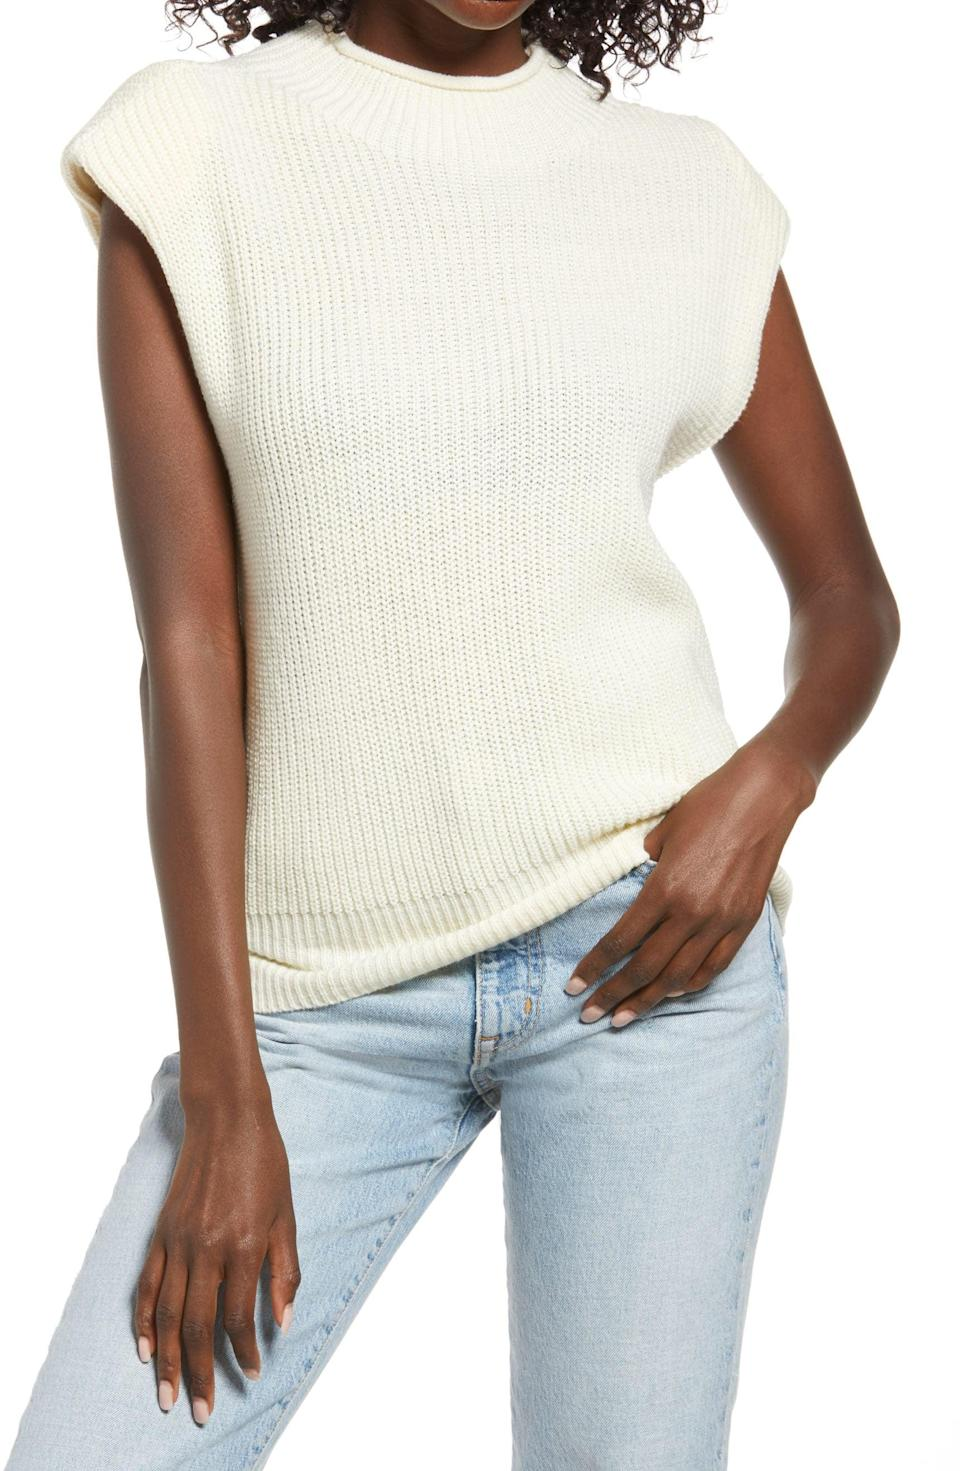 <p>Wear this <span>Vero Moda Padded Shoulder Sleeveless Sweater</span> ($49) alone or layer it over a long-sleeved shirt. The padded shoulders give it structure, while the sleeveless silhouette makes it easygoing.</p>